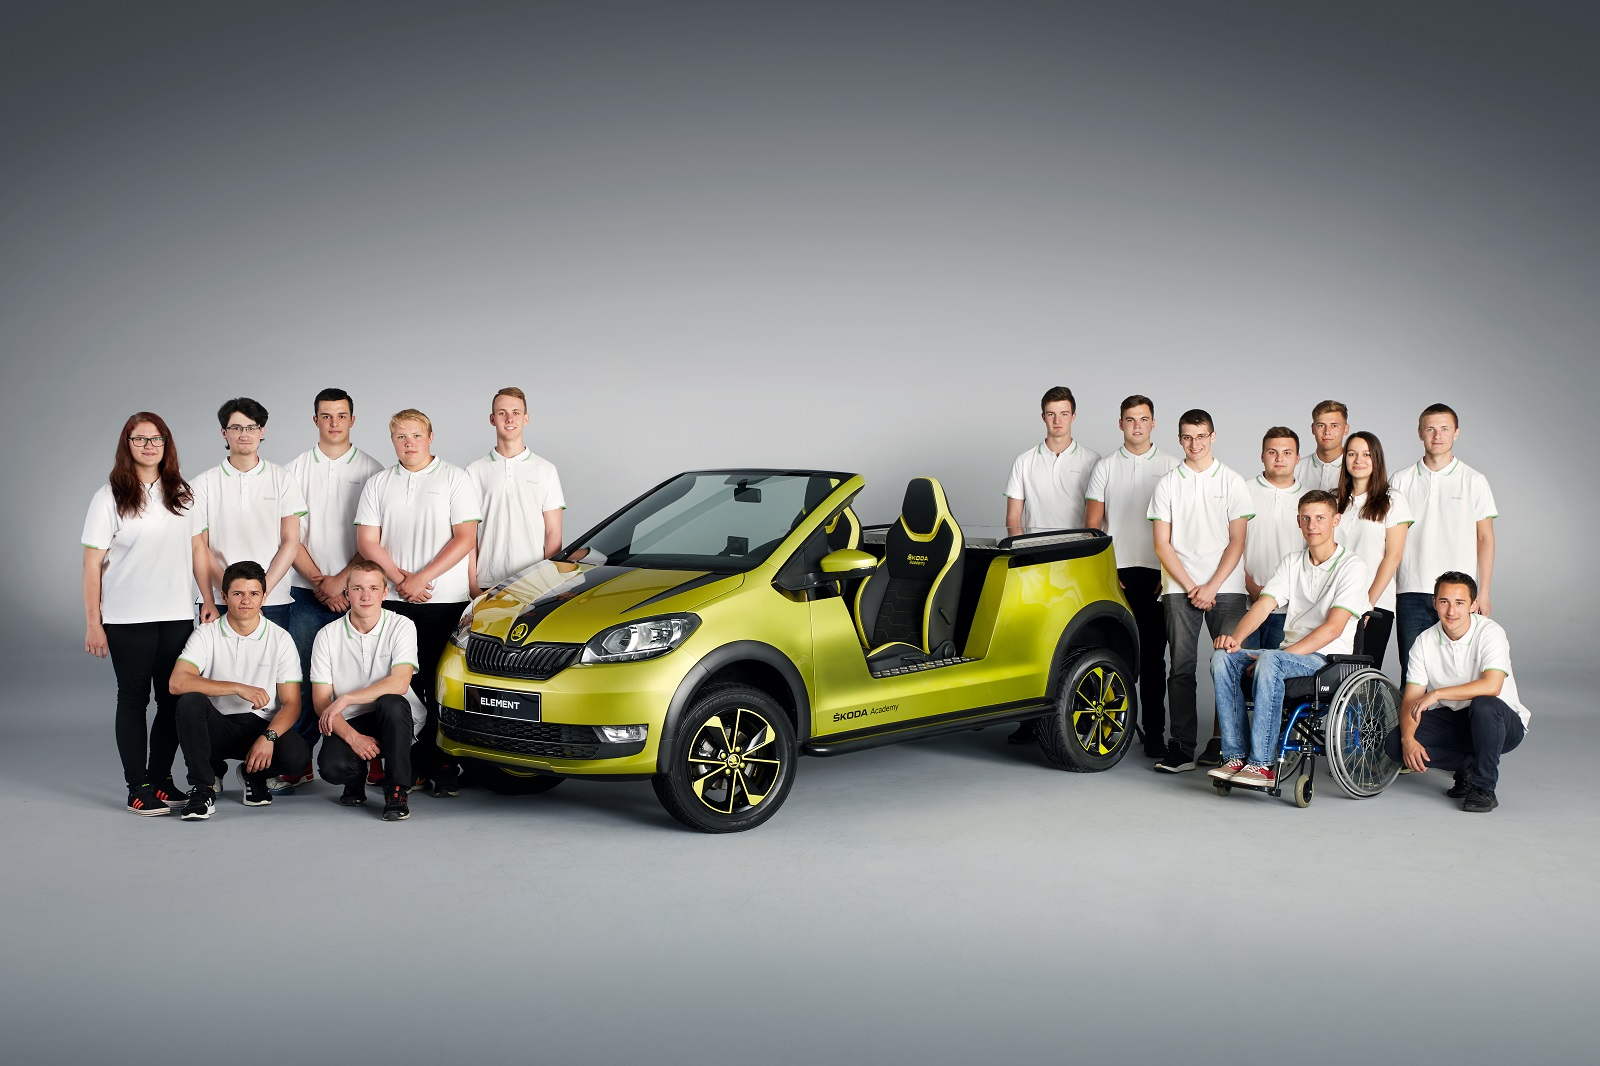 170619-SKODA-ELEMENT-SKODA-students-build-electric-buggy-1.jpg